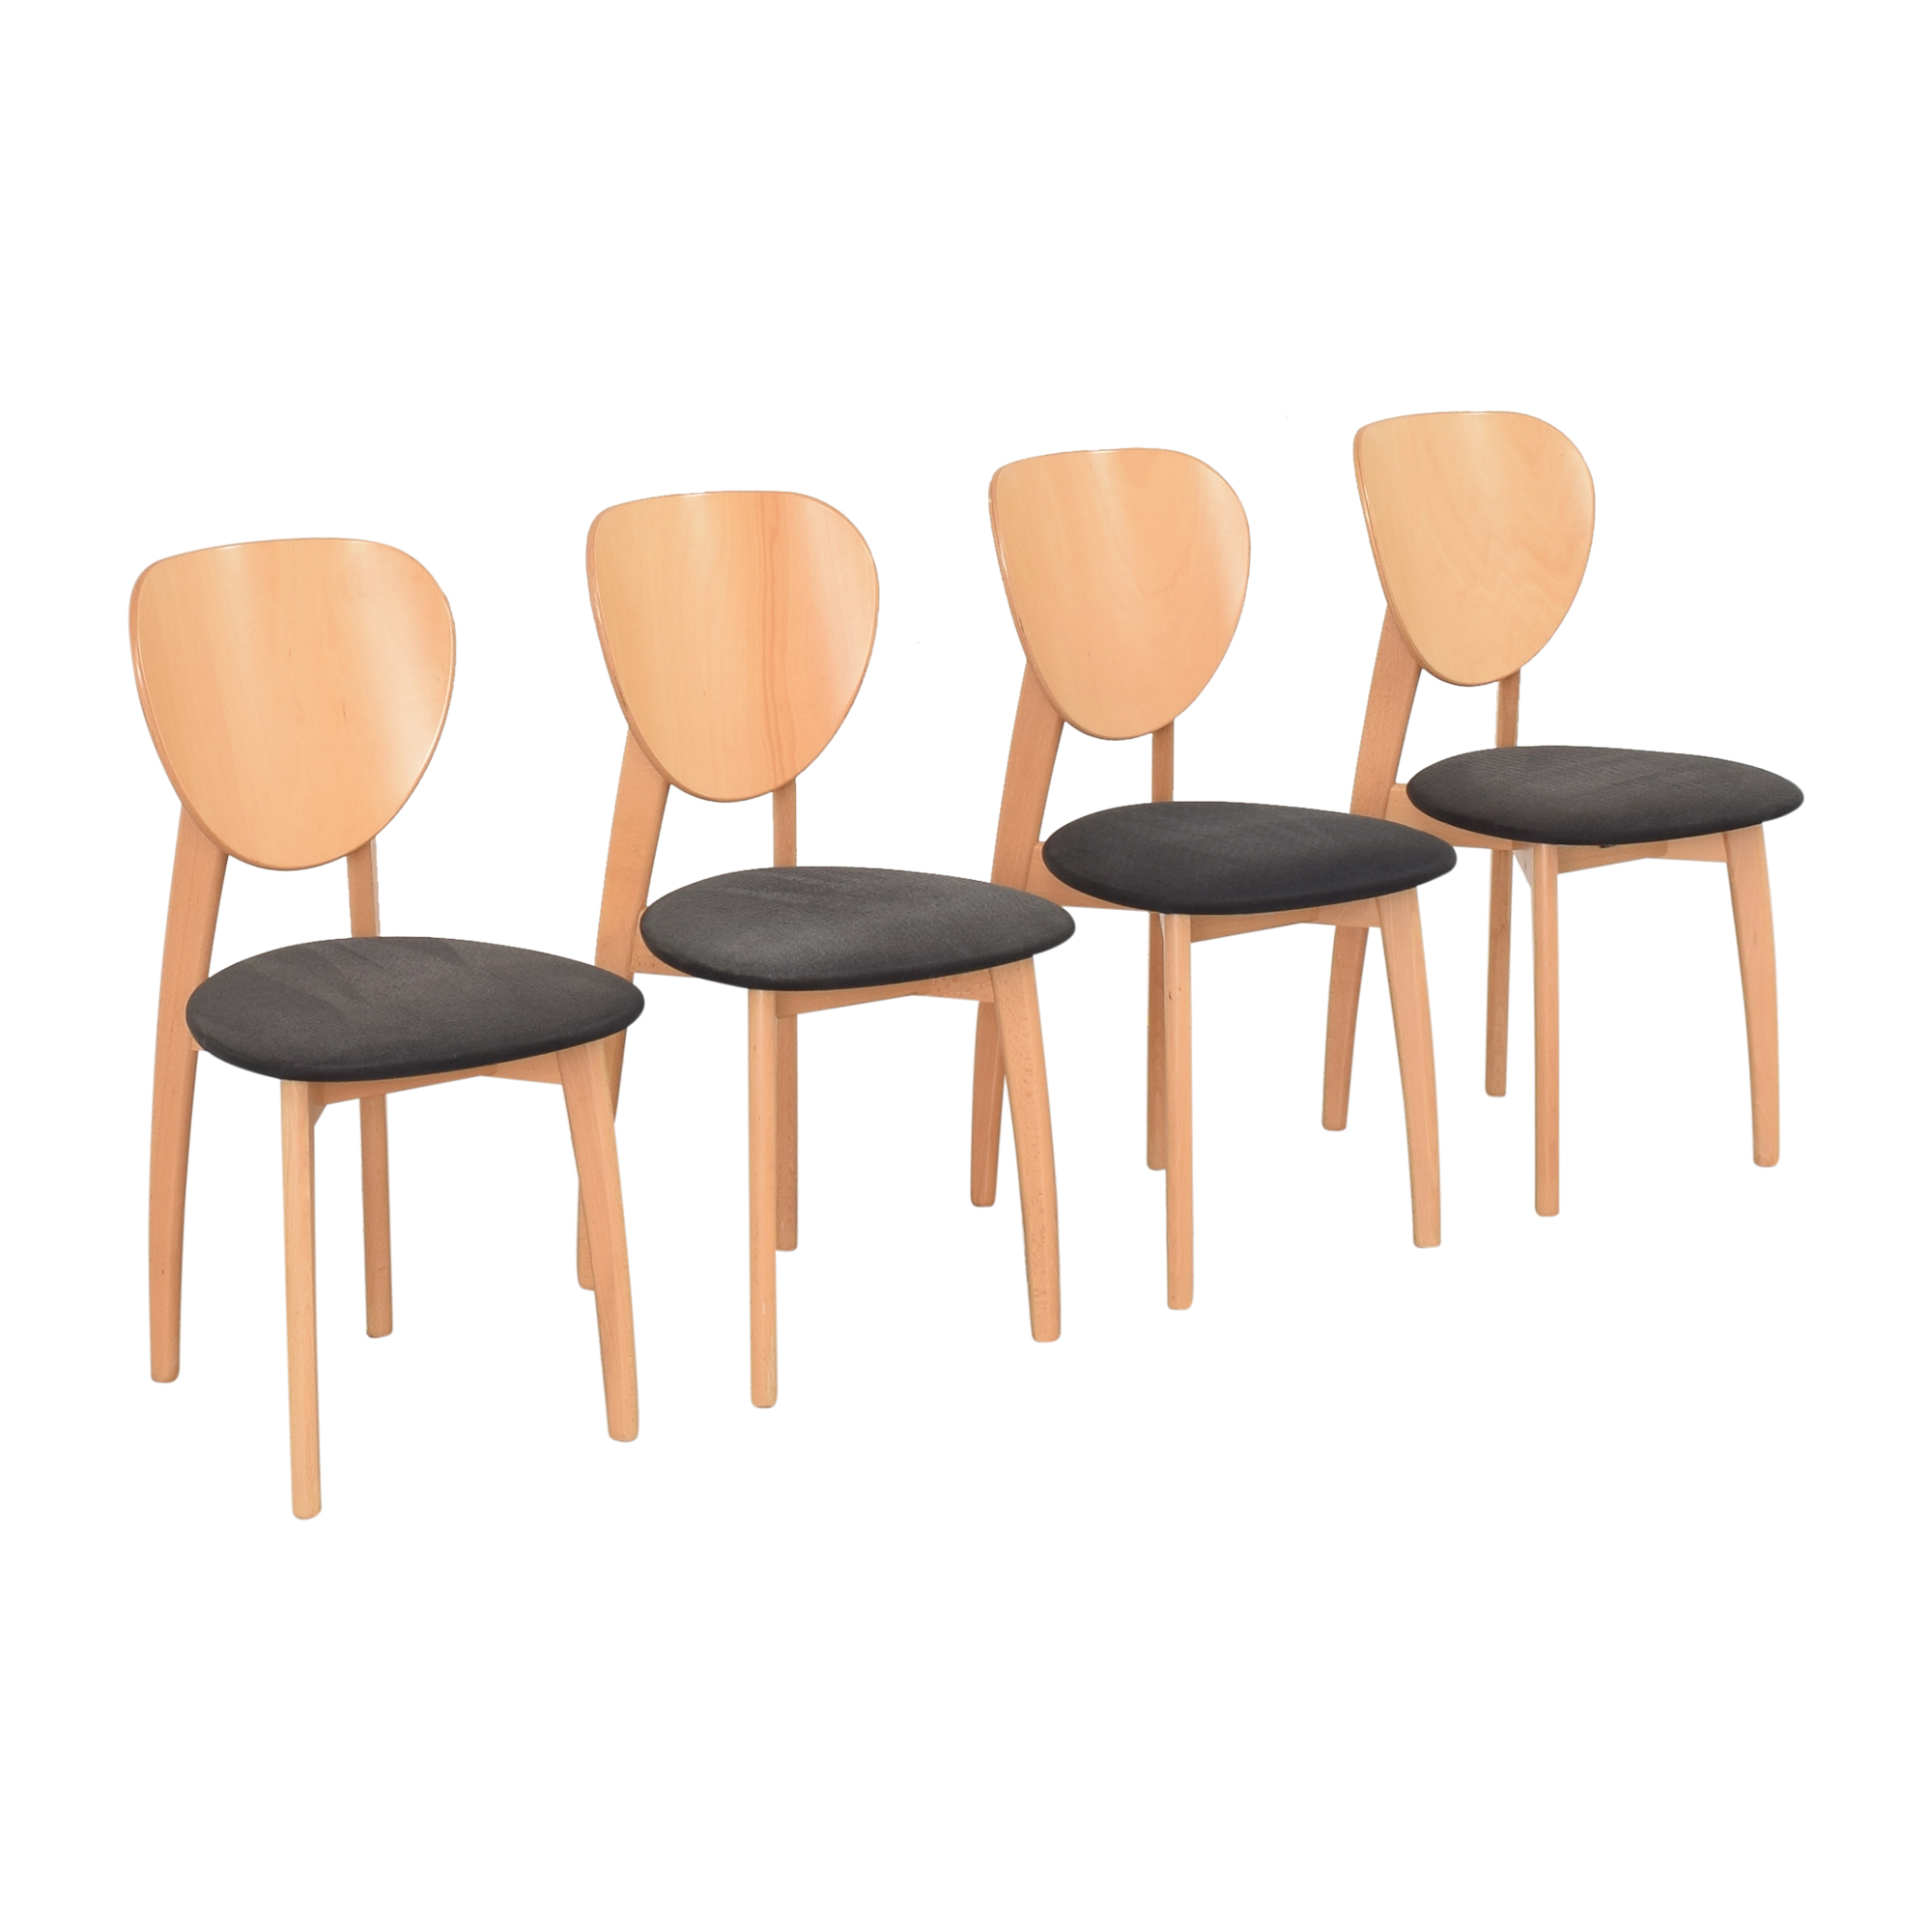 Calligaris Calligaris Modern Dining Chairs second hand